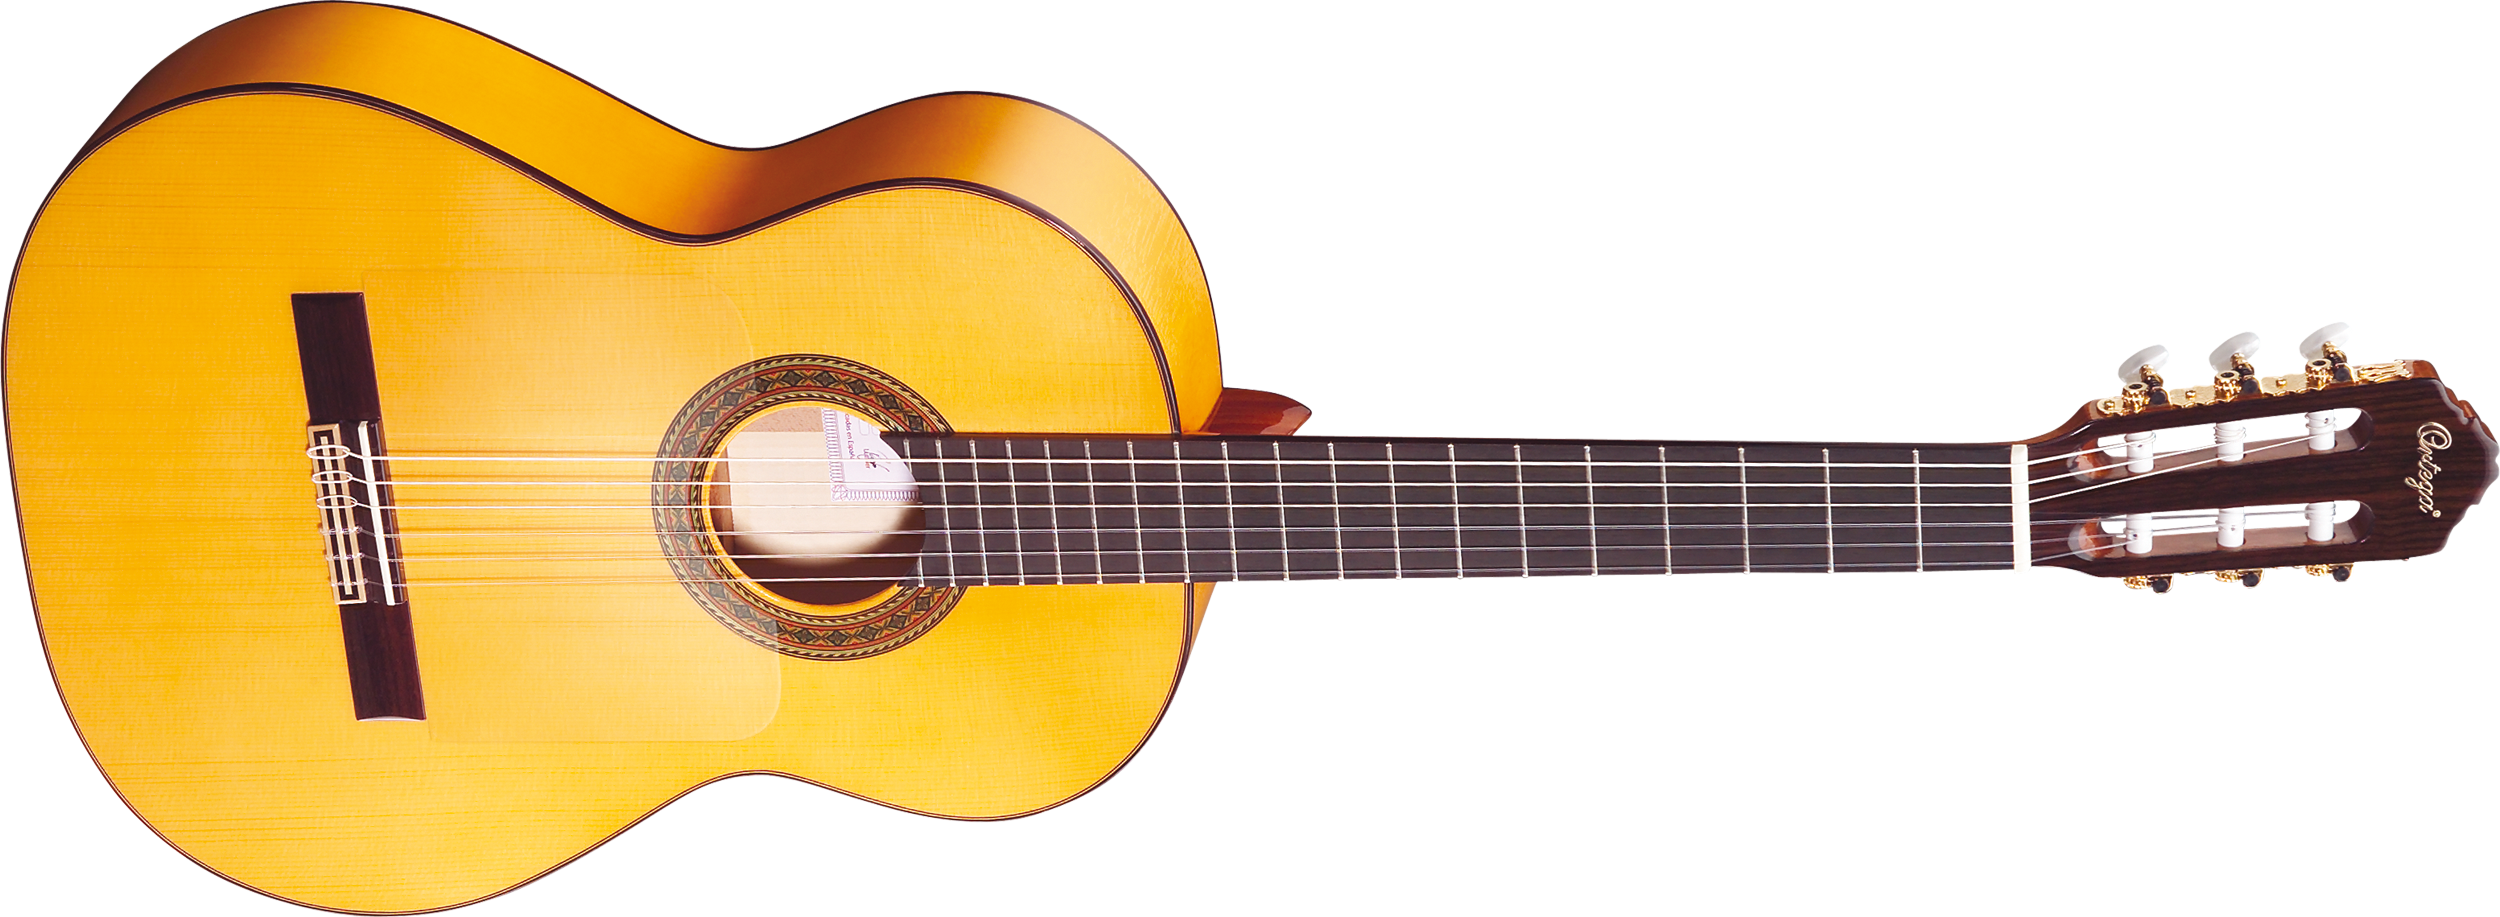 Acoustic Classic Guitar Png Image Classic Guitar Acoustic Guitar Guitar